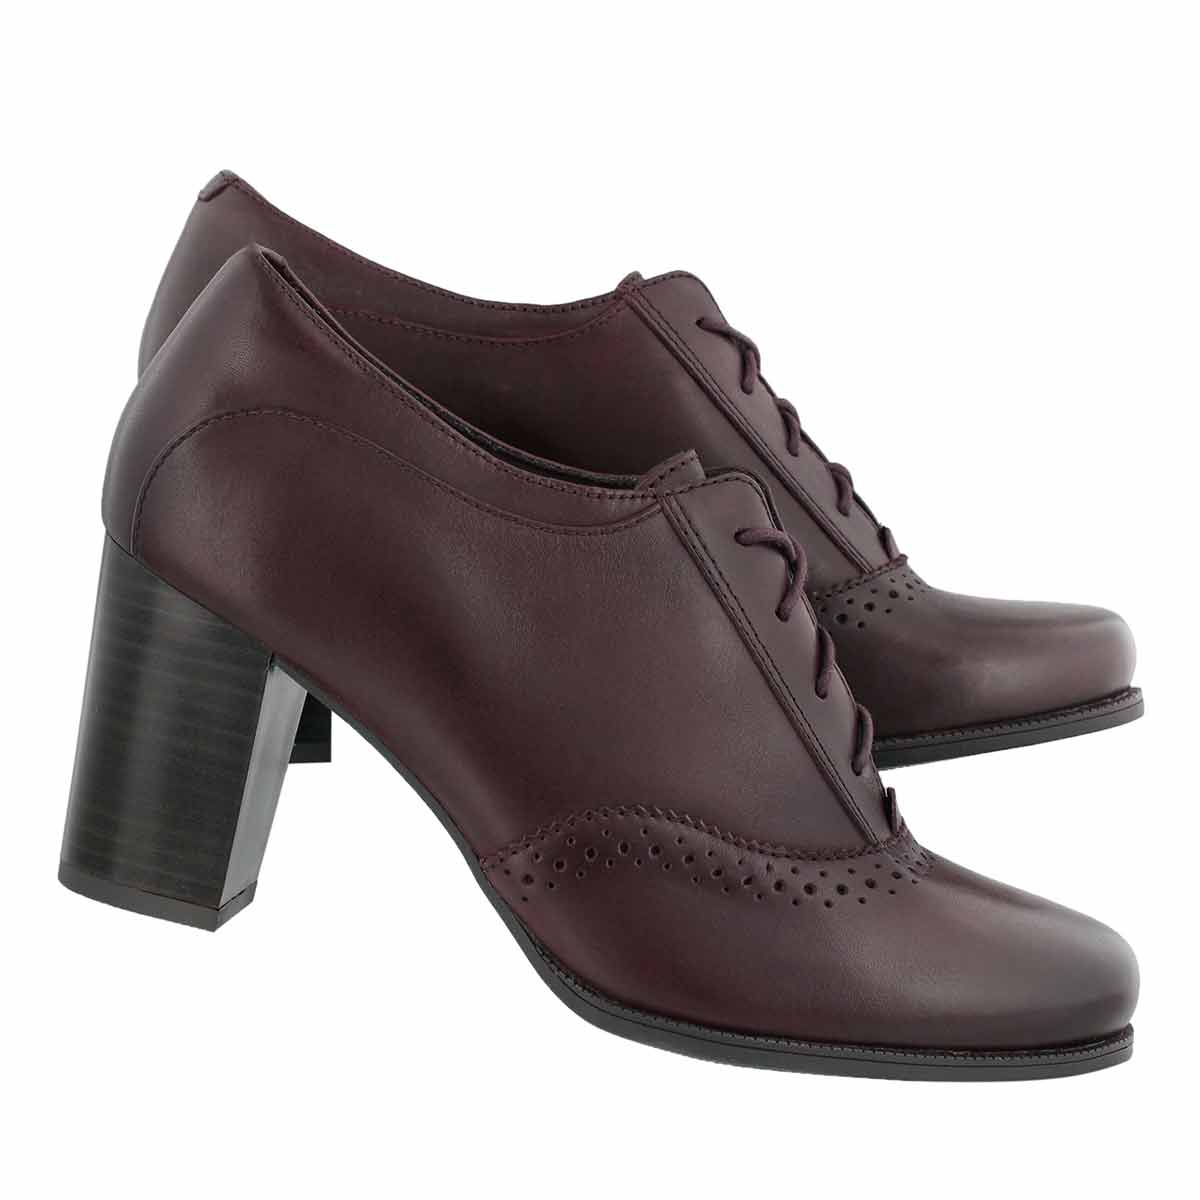 Lds Claeson Pearl burgundy dress heel